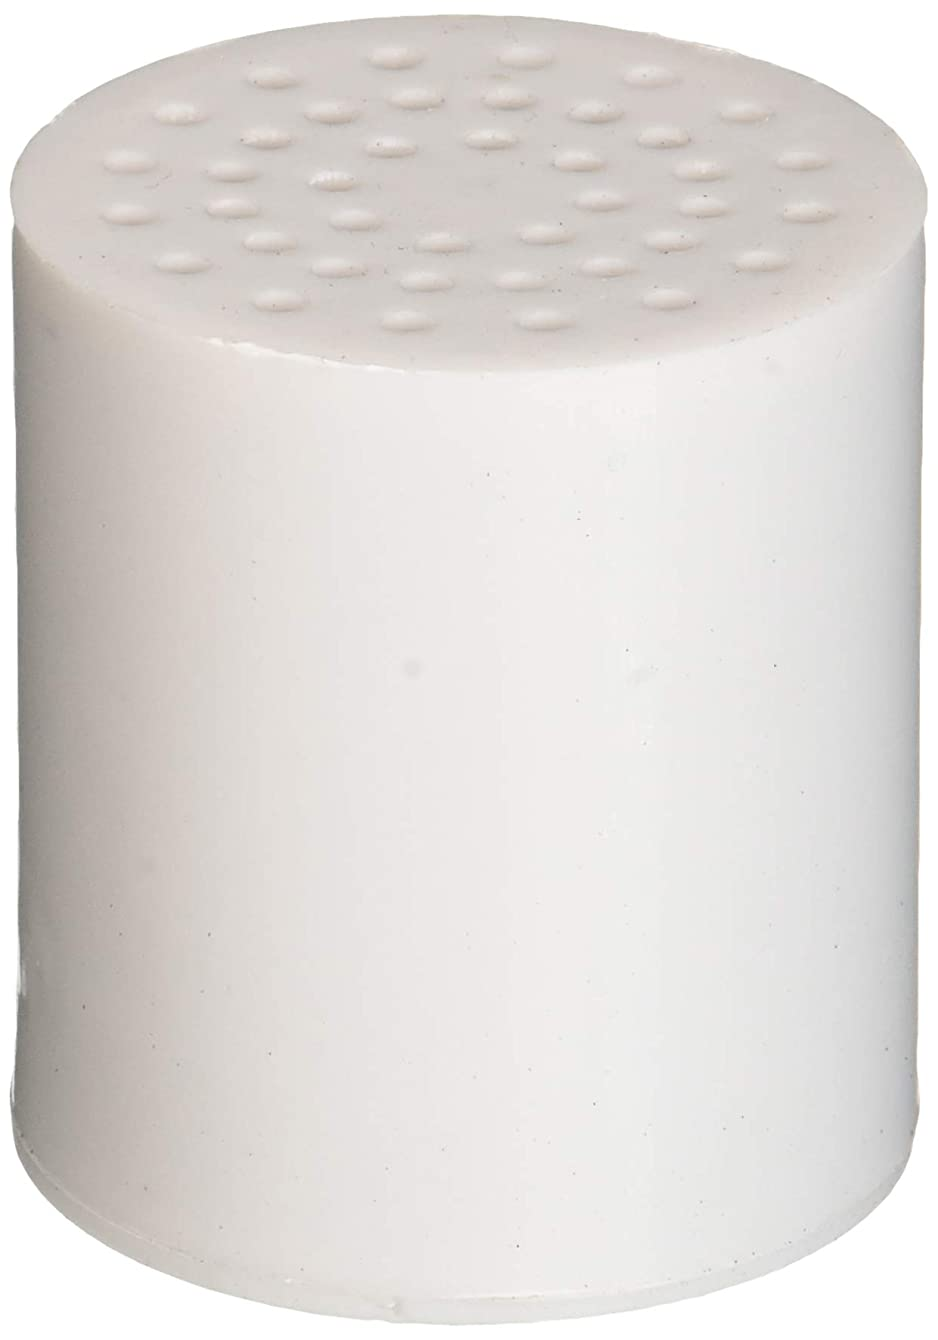 Replacement disposable 15 stage shower filter cartridge for use with geysa universal shower filter